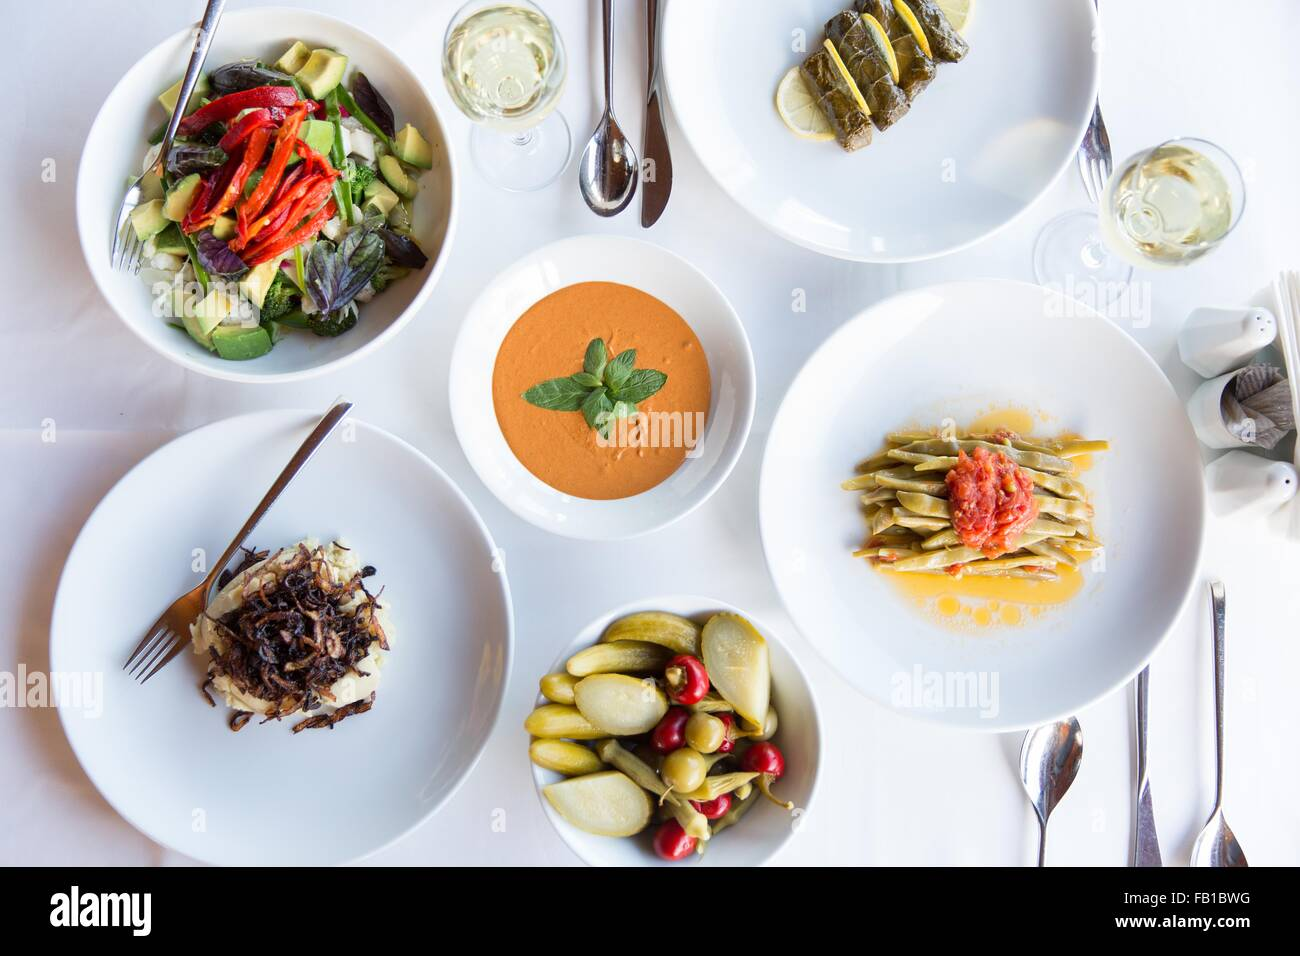 Selection of traditional Turkish dishes, still life - Stock Image